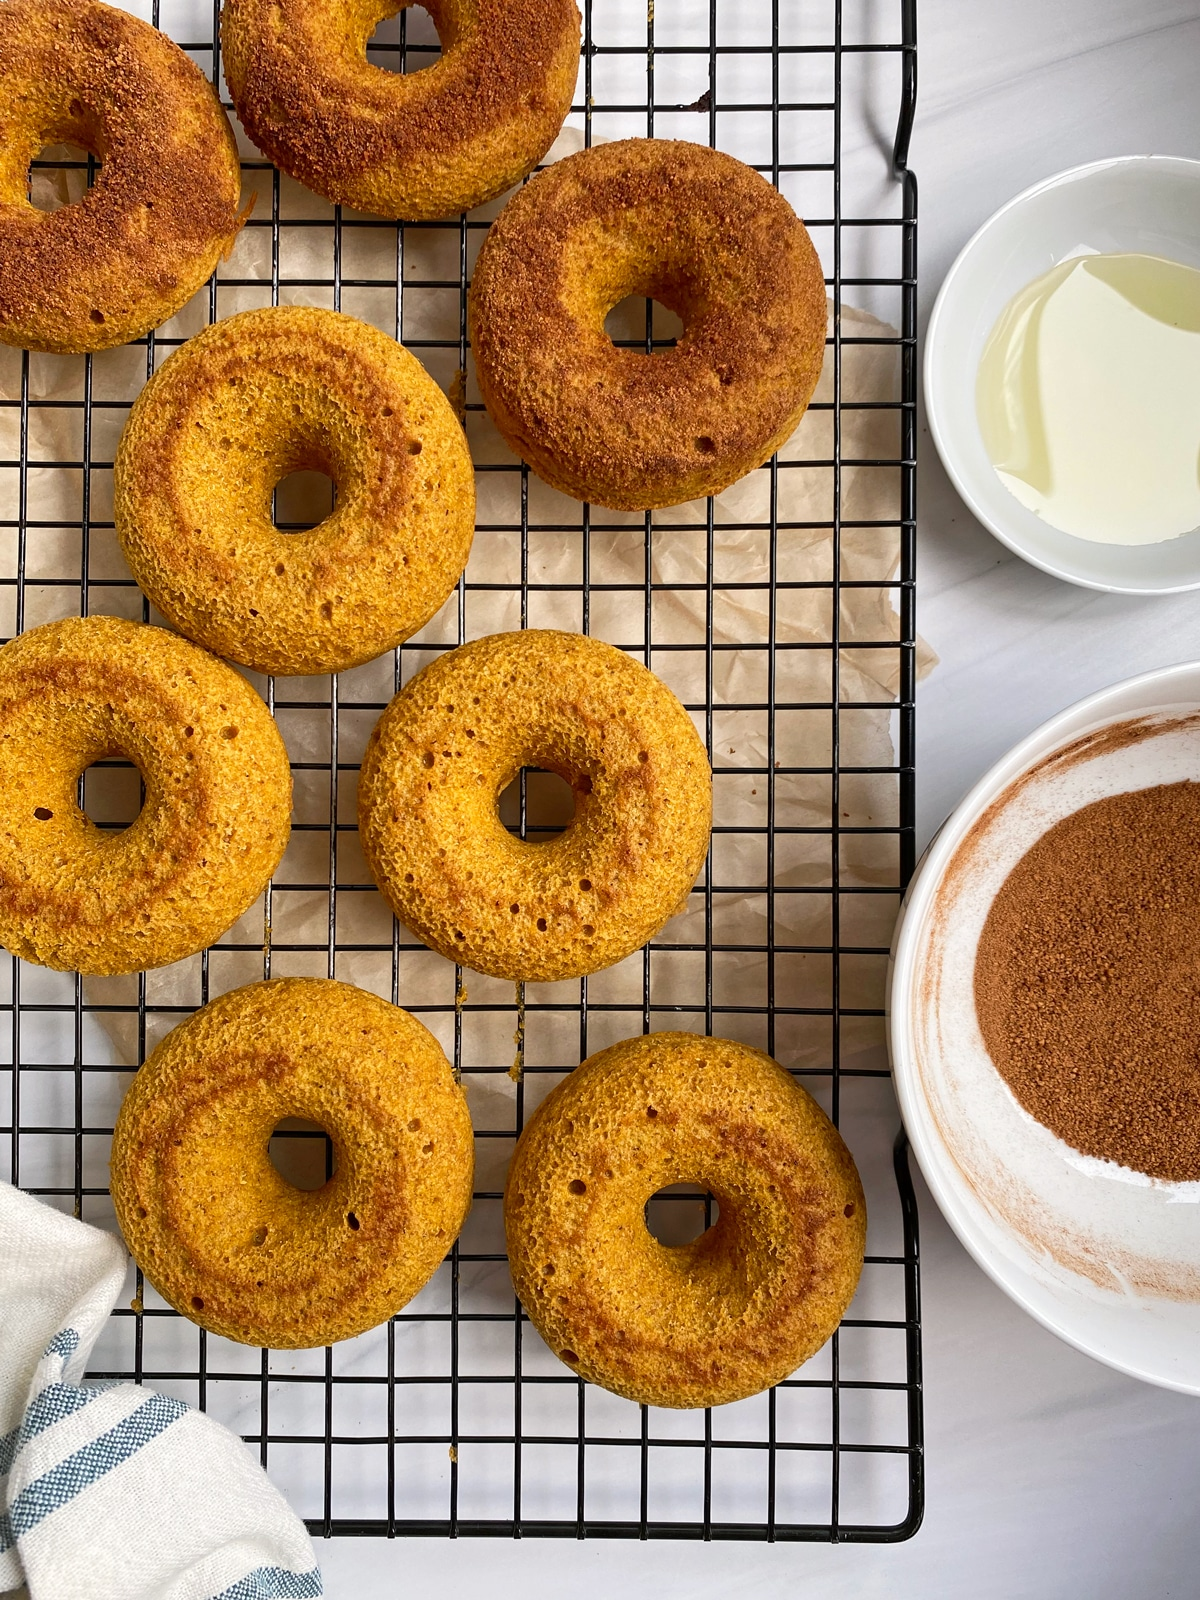 putting the cinnamon sugar on the donuts